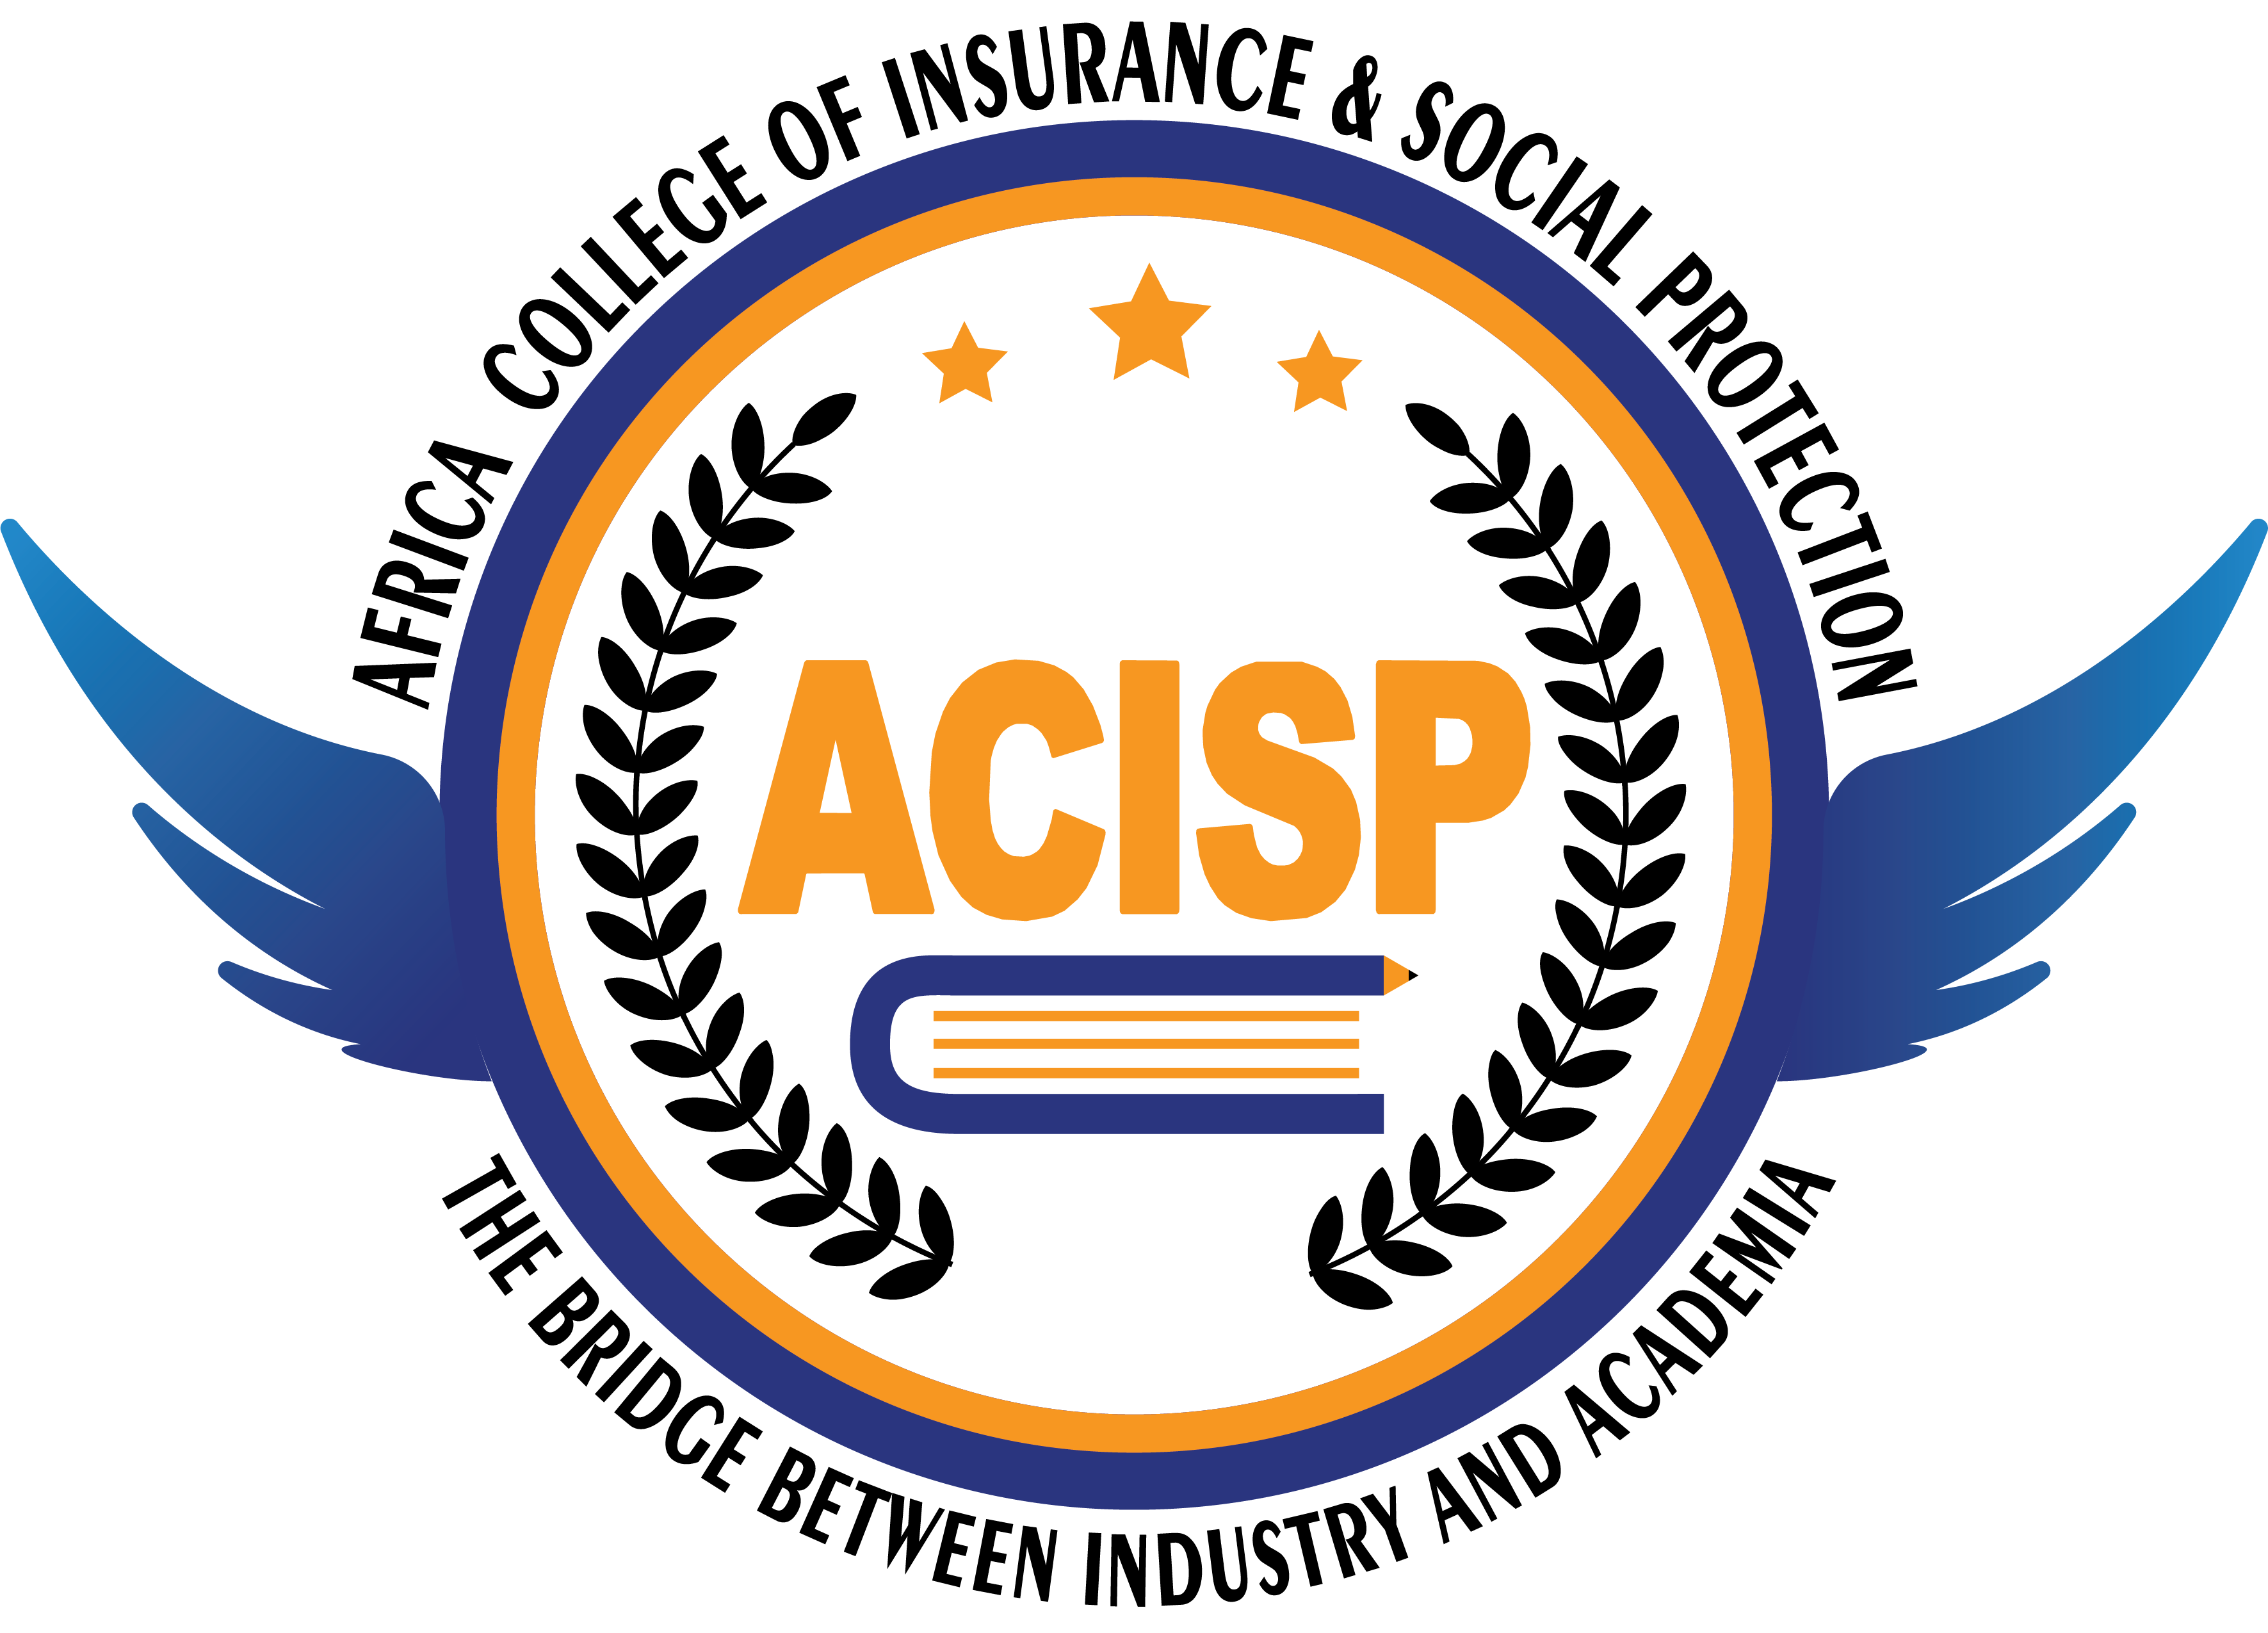 ACISP - Africa College of Insurance & Social Protection